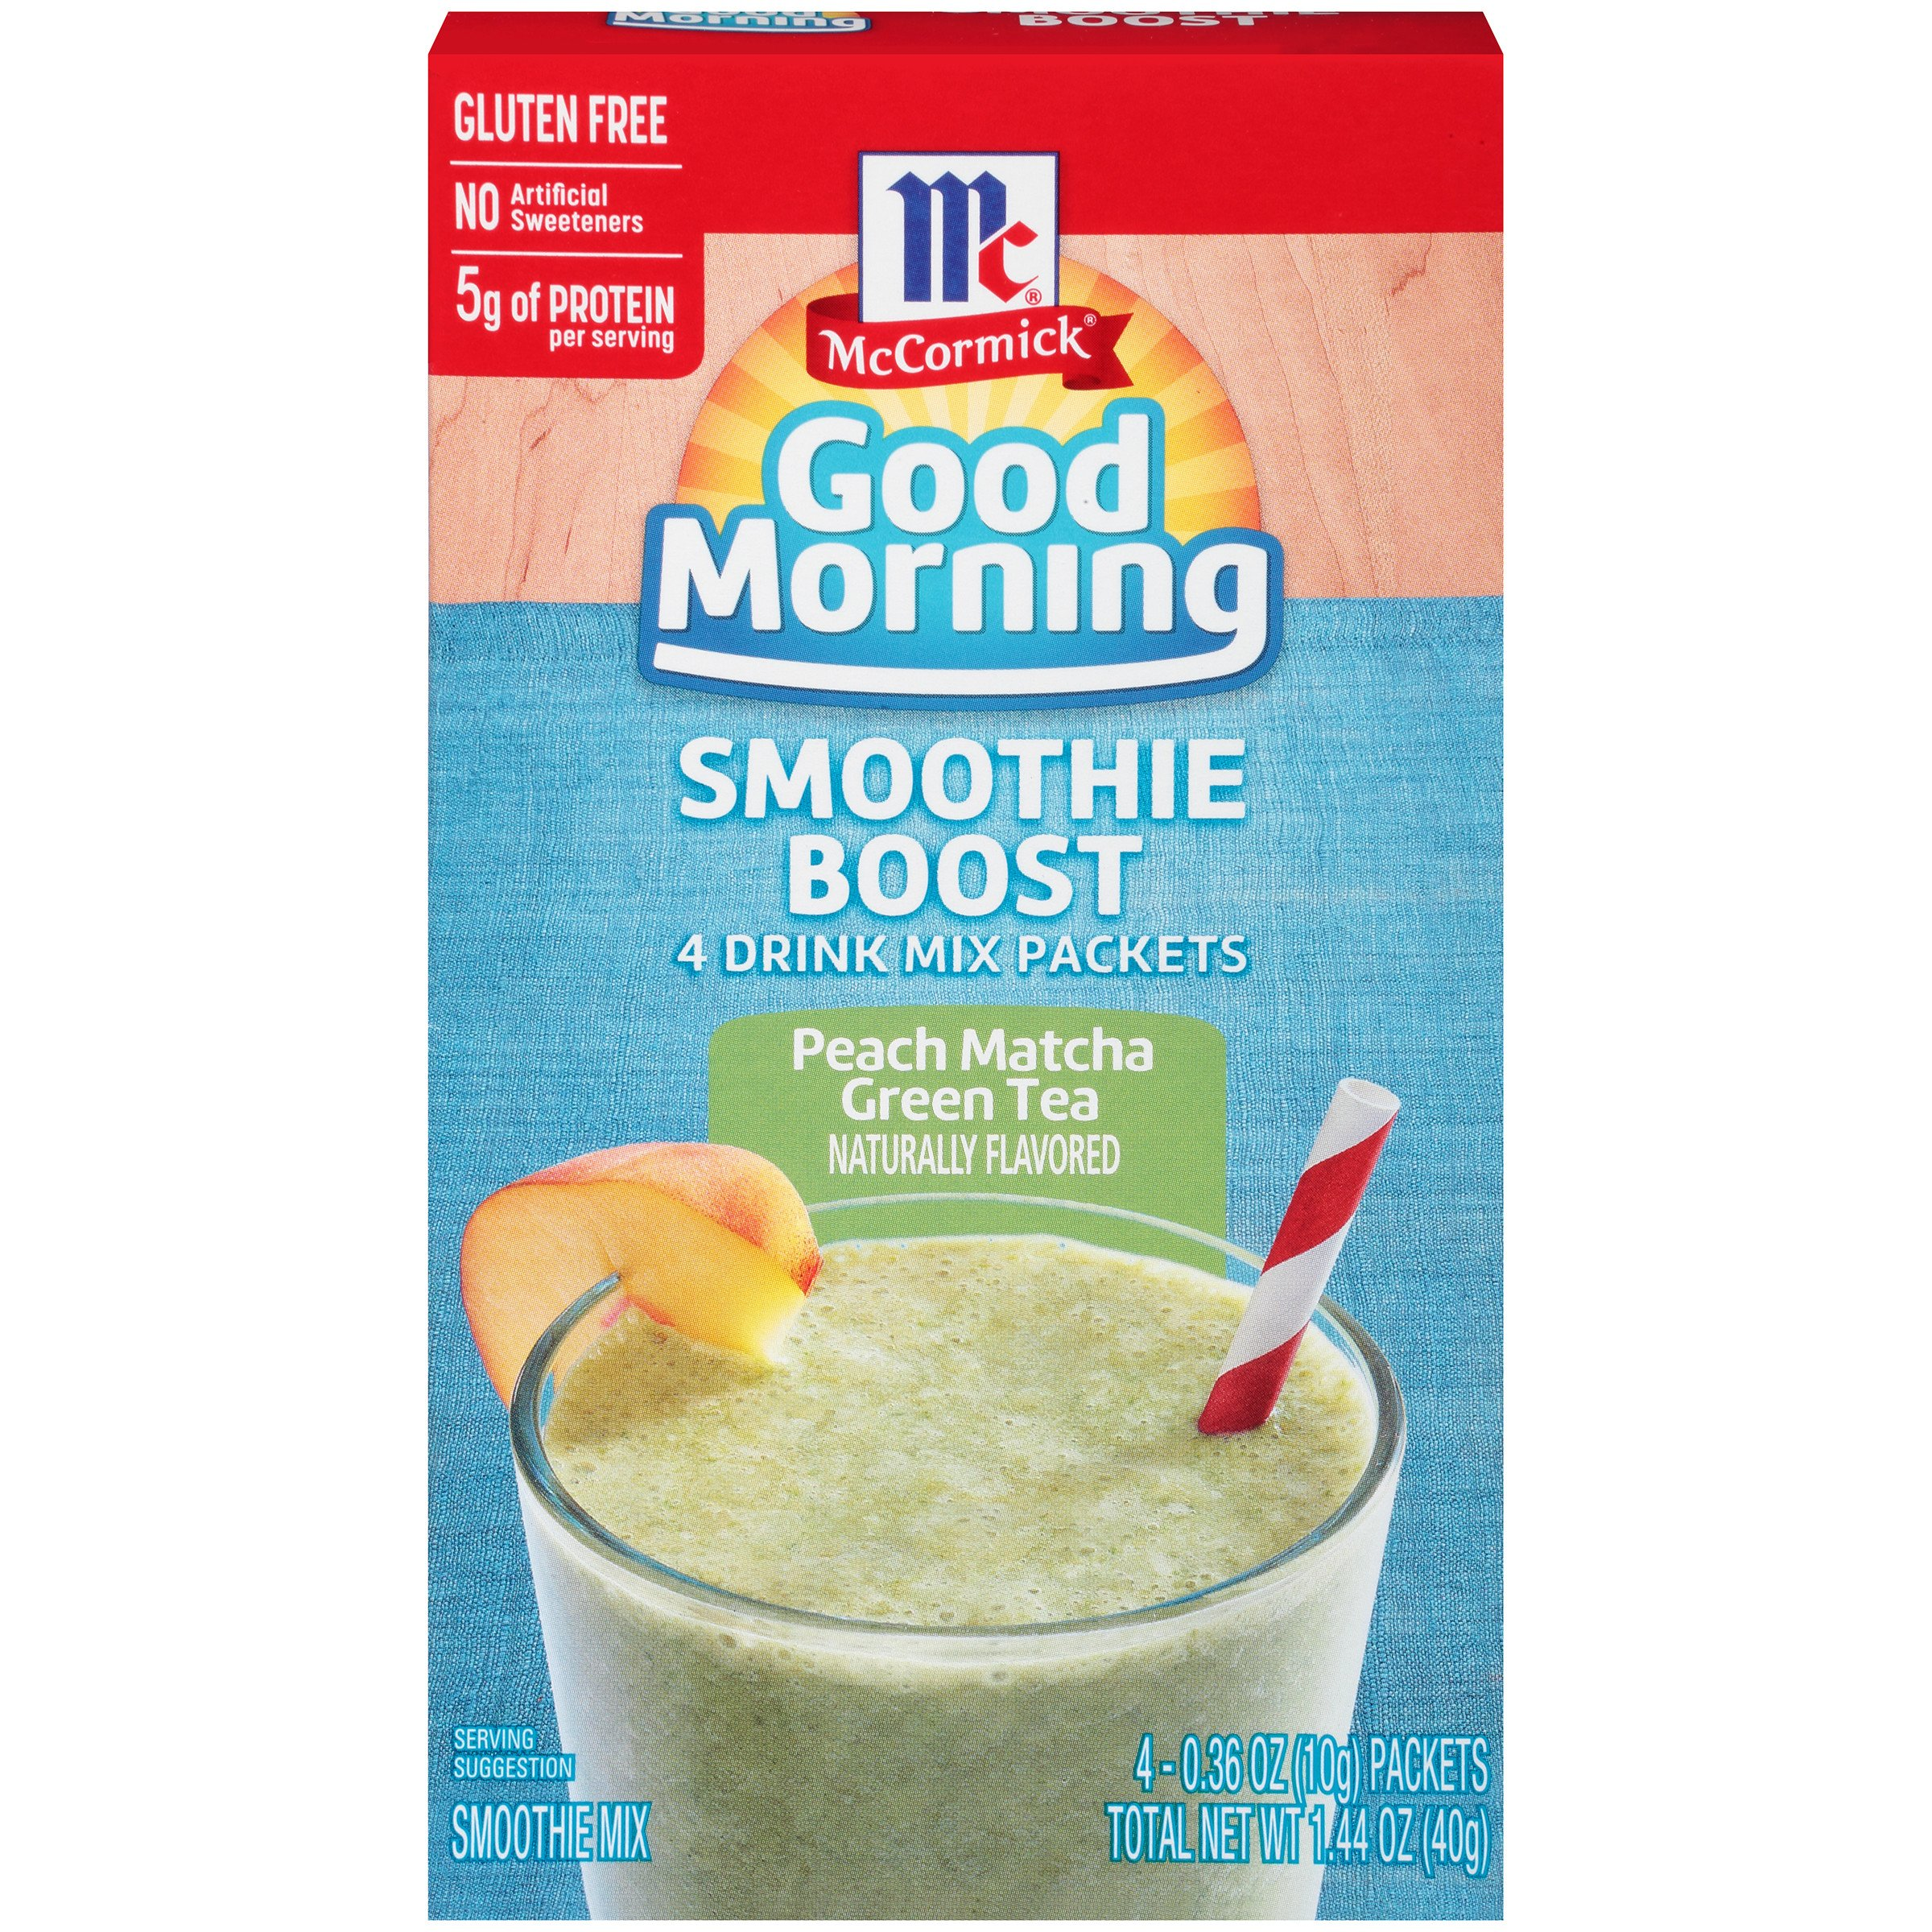 McCormick Good Morning Smoothie Boost Smoothie Mix Packets, Peach Matcha Green Tea, 1.44 Ounce